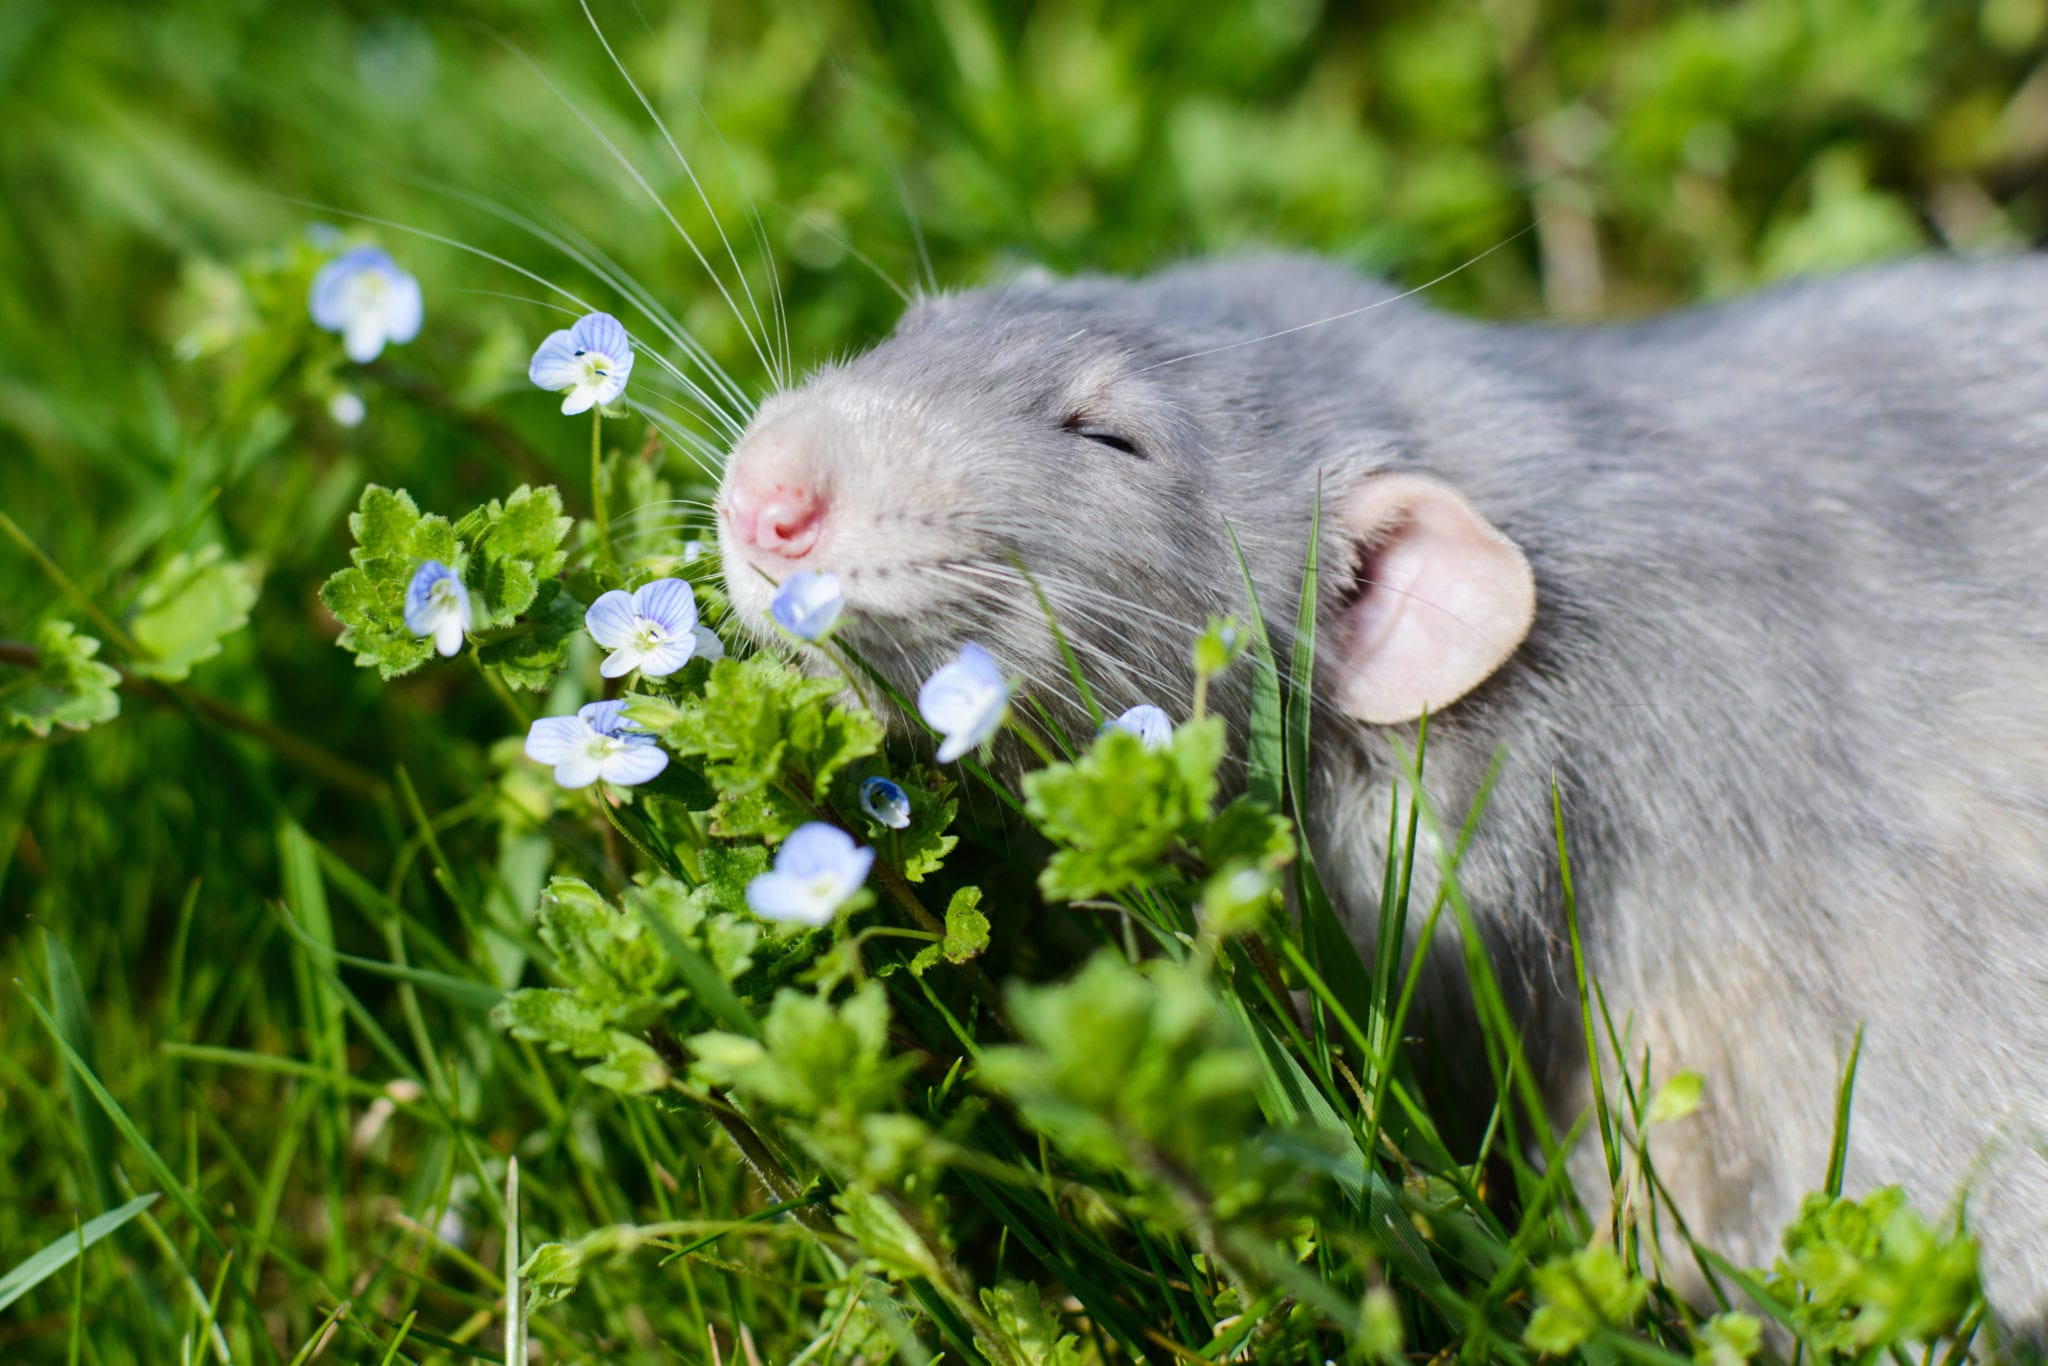 grey rat high off life in a field